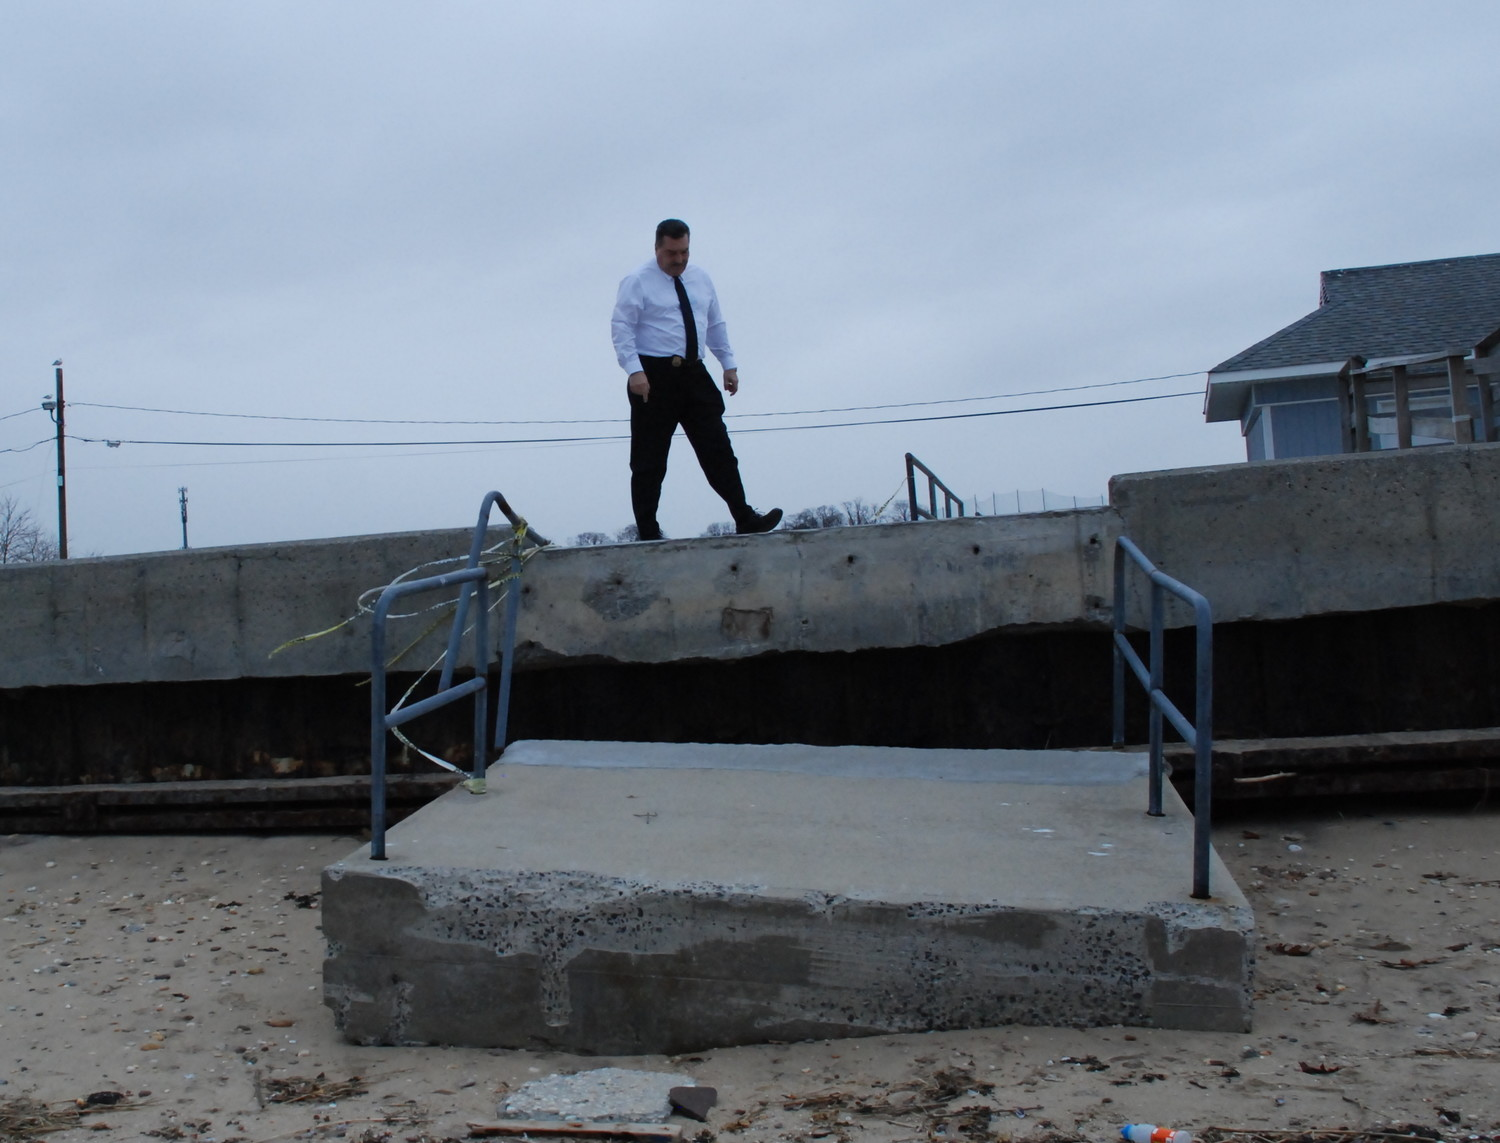 """Right now,"" Mayor Tim Tenke said, looking at the broken access ramp at Prybil Beach, ""if people came down and used the beach, and they weren't paying attention, they could potentially get hurt."""